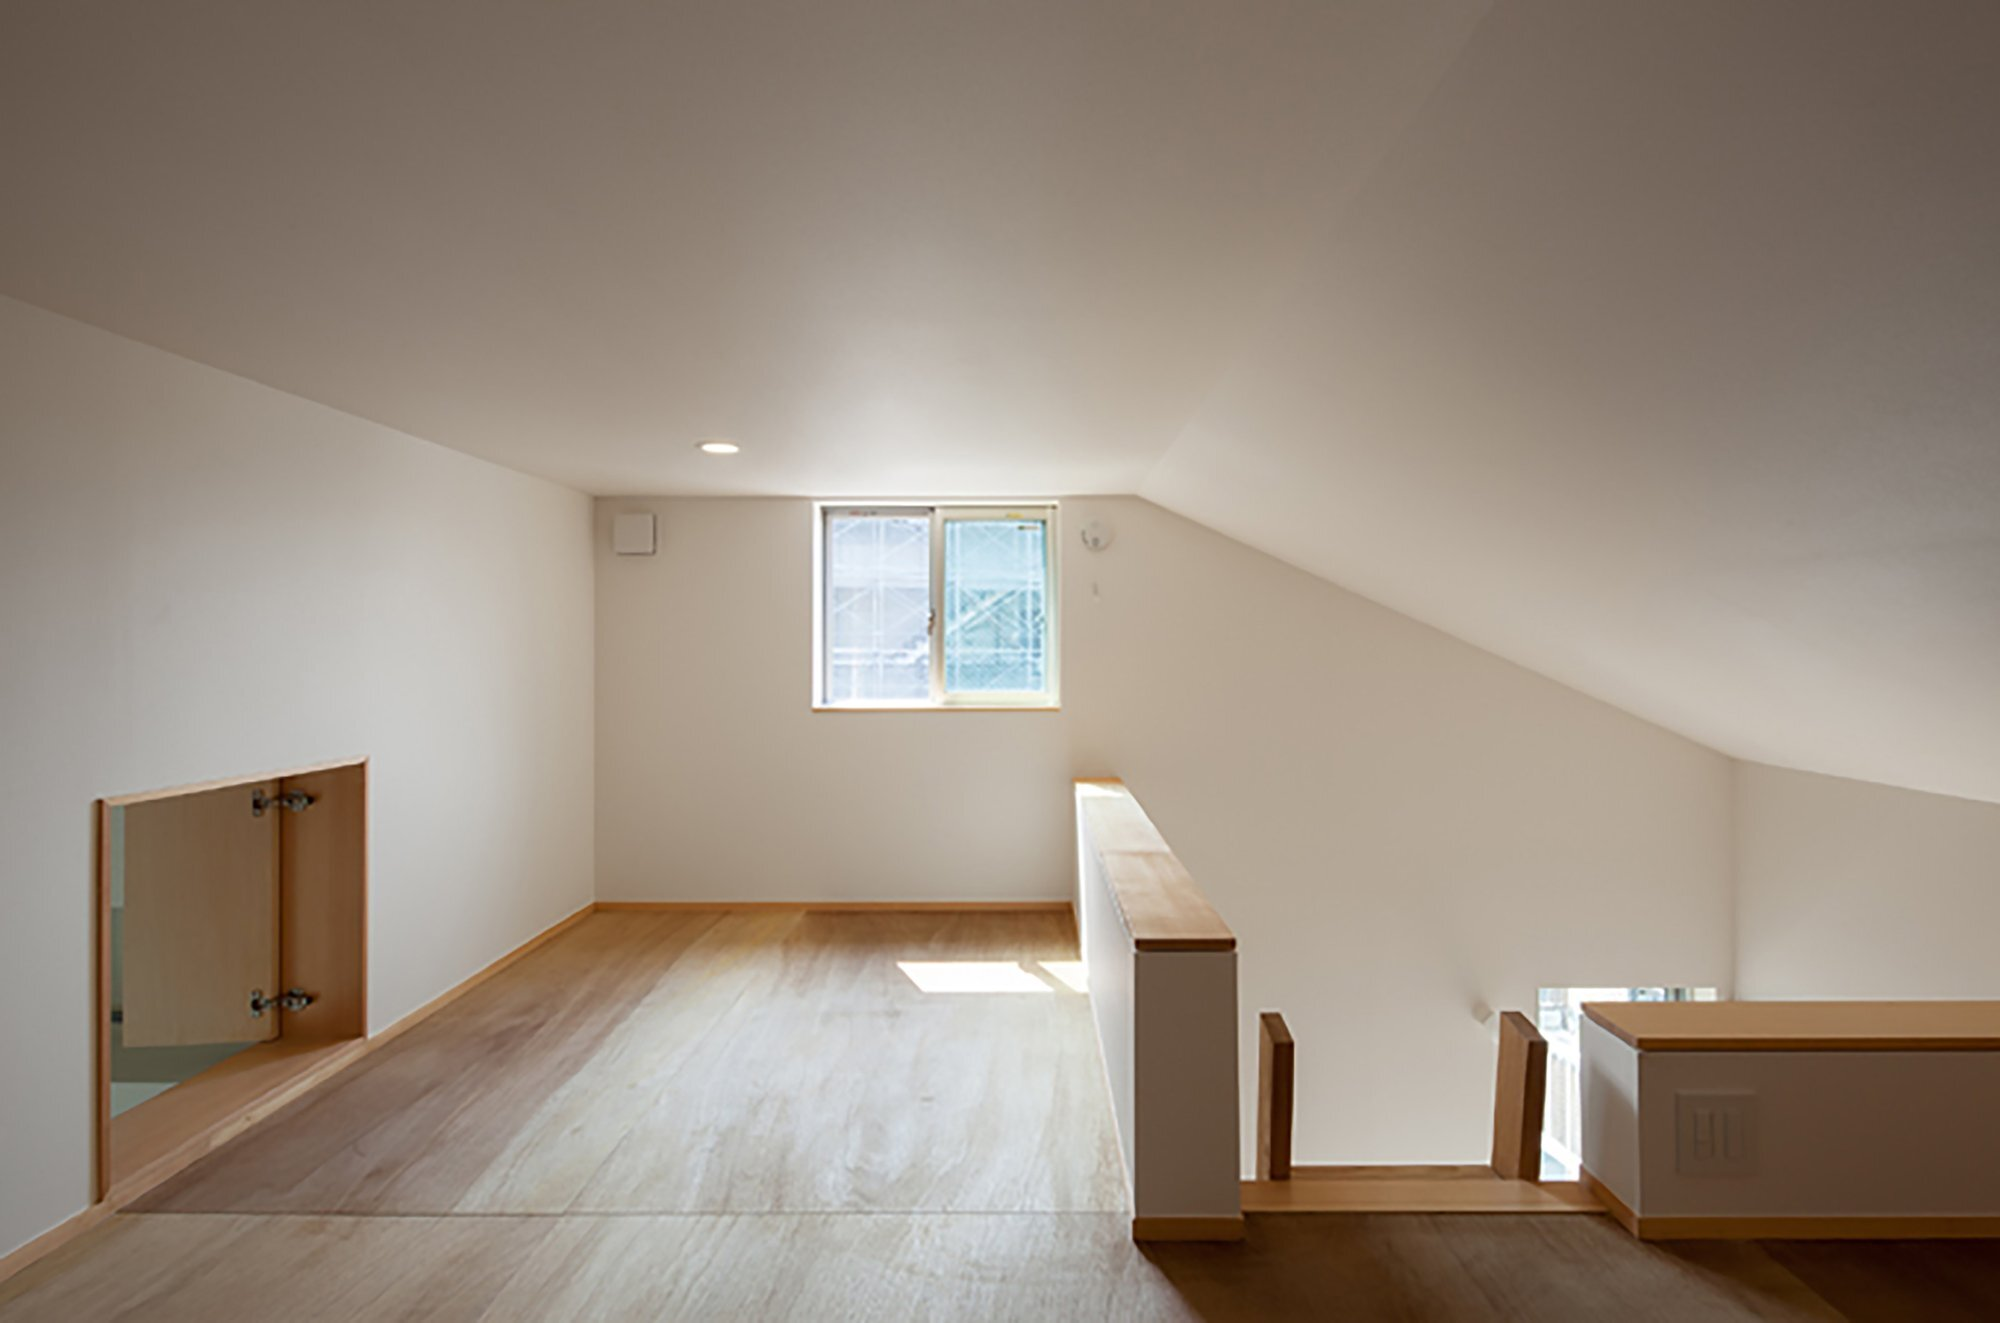 Nakano Fireproof Wooden House - Masashi Ogihara - Nakano, Japan - Small Japanese House - Loft - Humble Homes